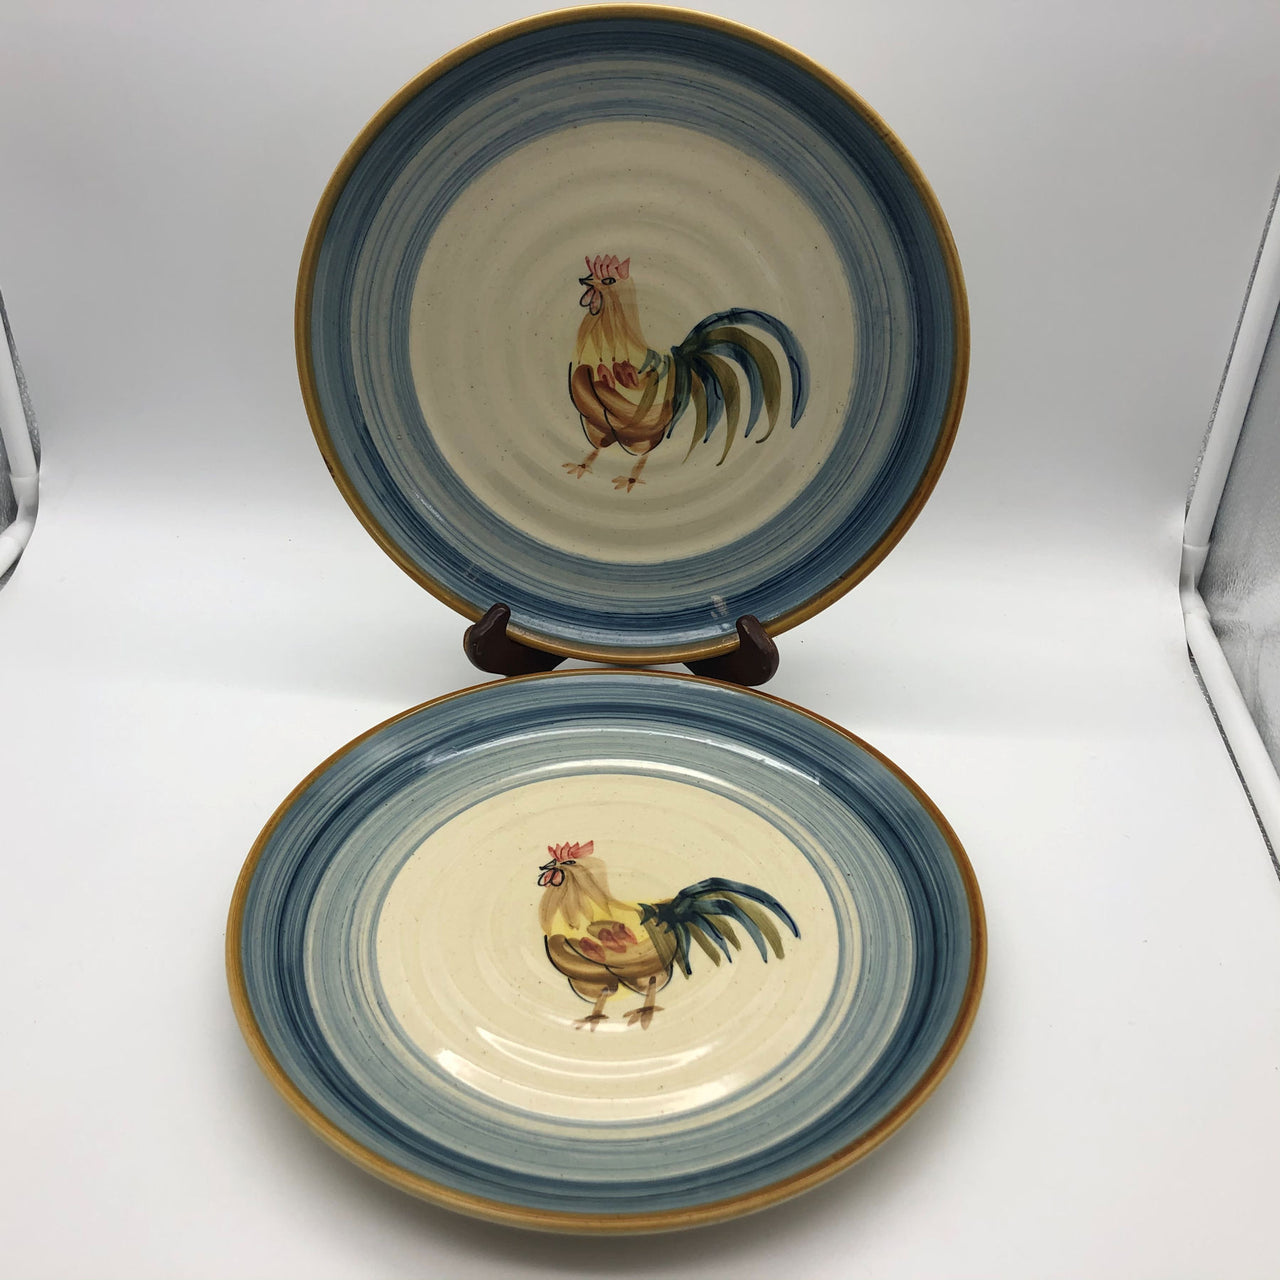 Gibson Everyday Ocean Dream Rooster 2 Dinner Plates